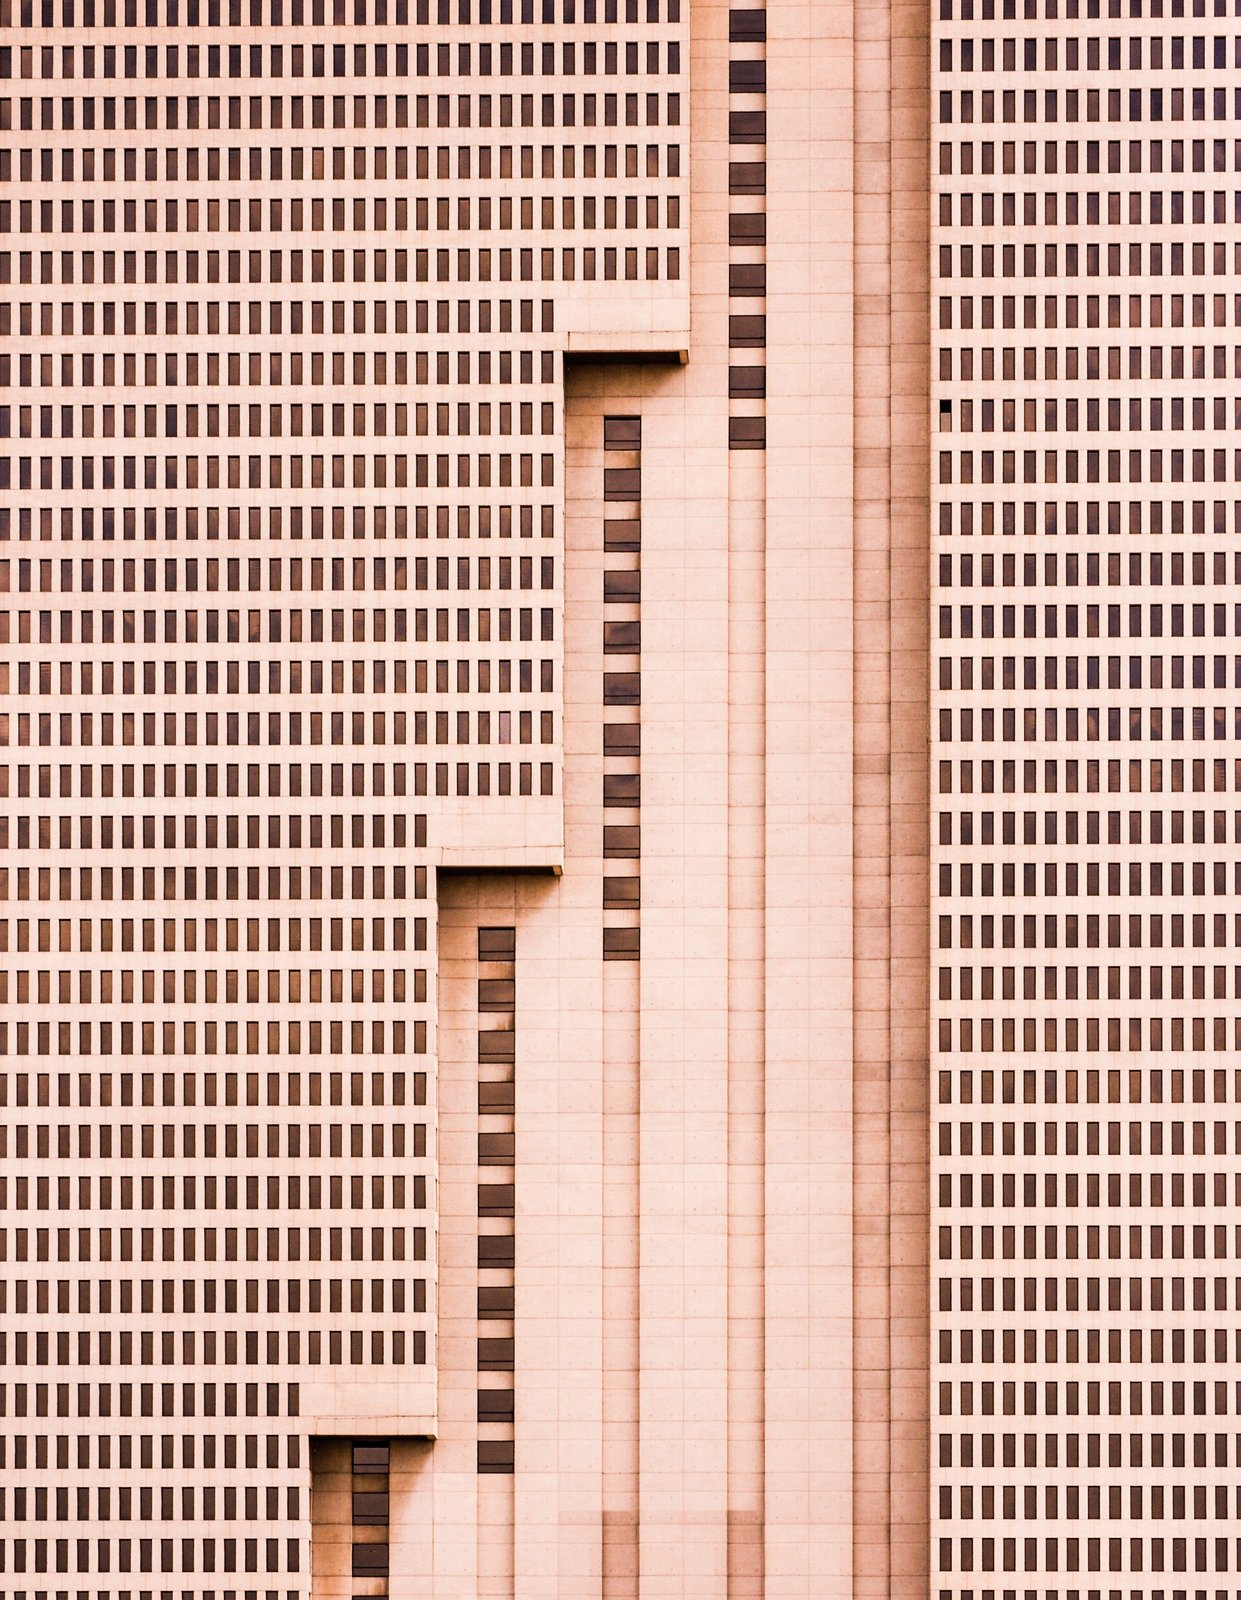 "Stairs, 2014. ""The tallest building in Fort Worth, Texas, this simple brutalist architectural design is a unique addition to the vibrant and growing downtown landscape, with a strong, repetitive pattern of windows being interrupted by meticulous, powerful vertical lines,"" says Olic.  Photo 5 of 16 in Nikola Olic's Dizzying Architectural Photography from Dizzying Architectural Photography"